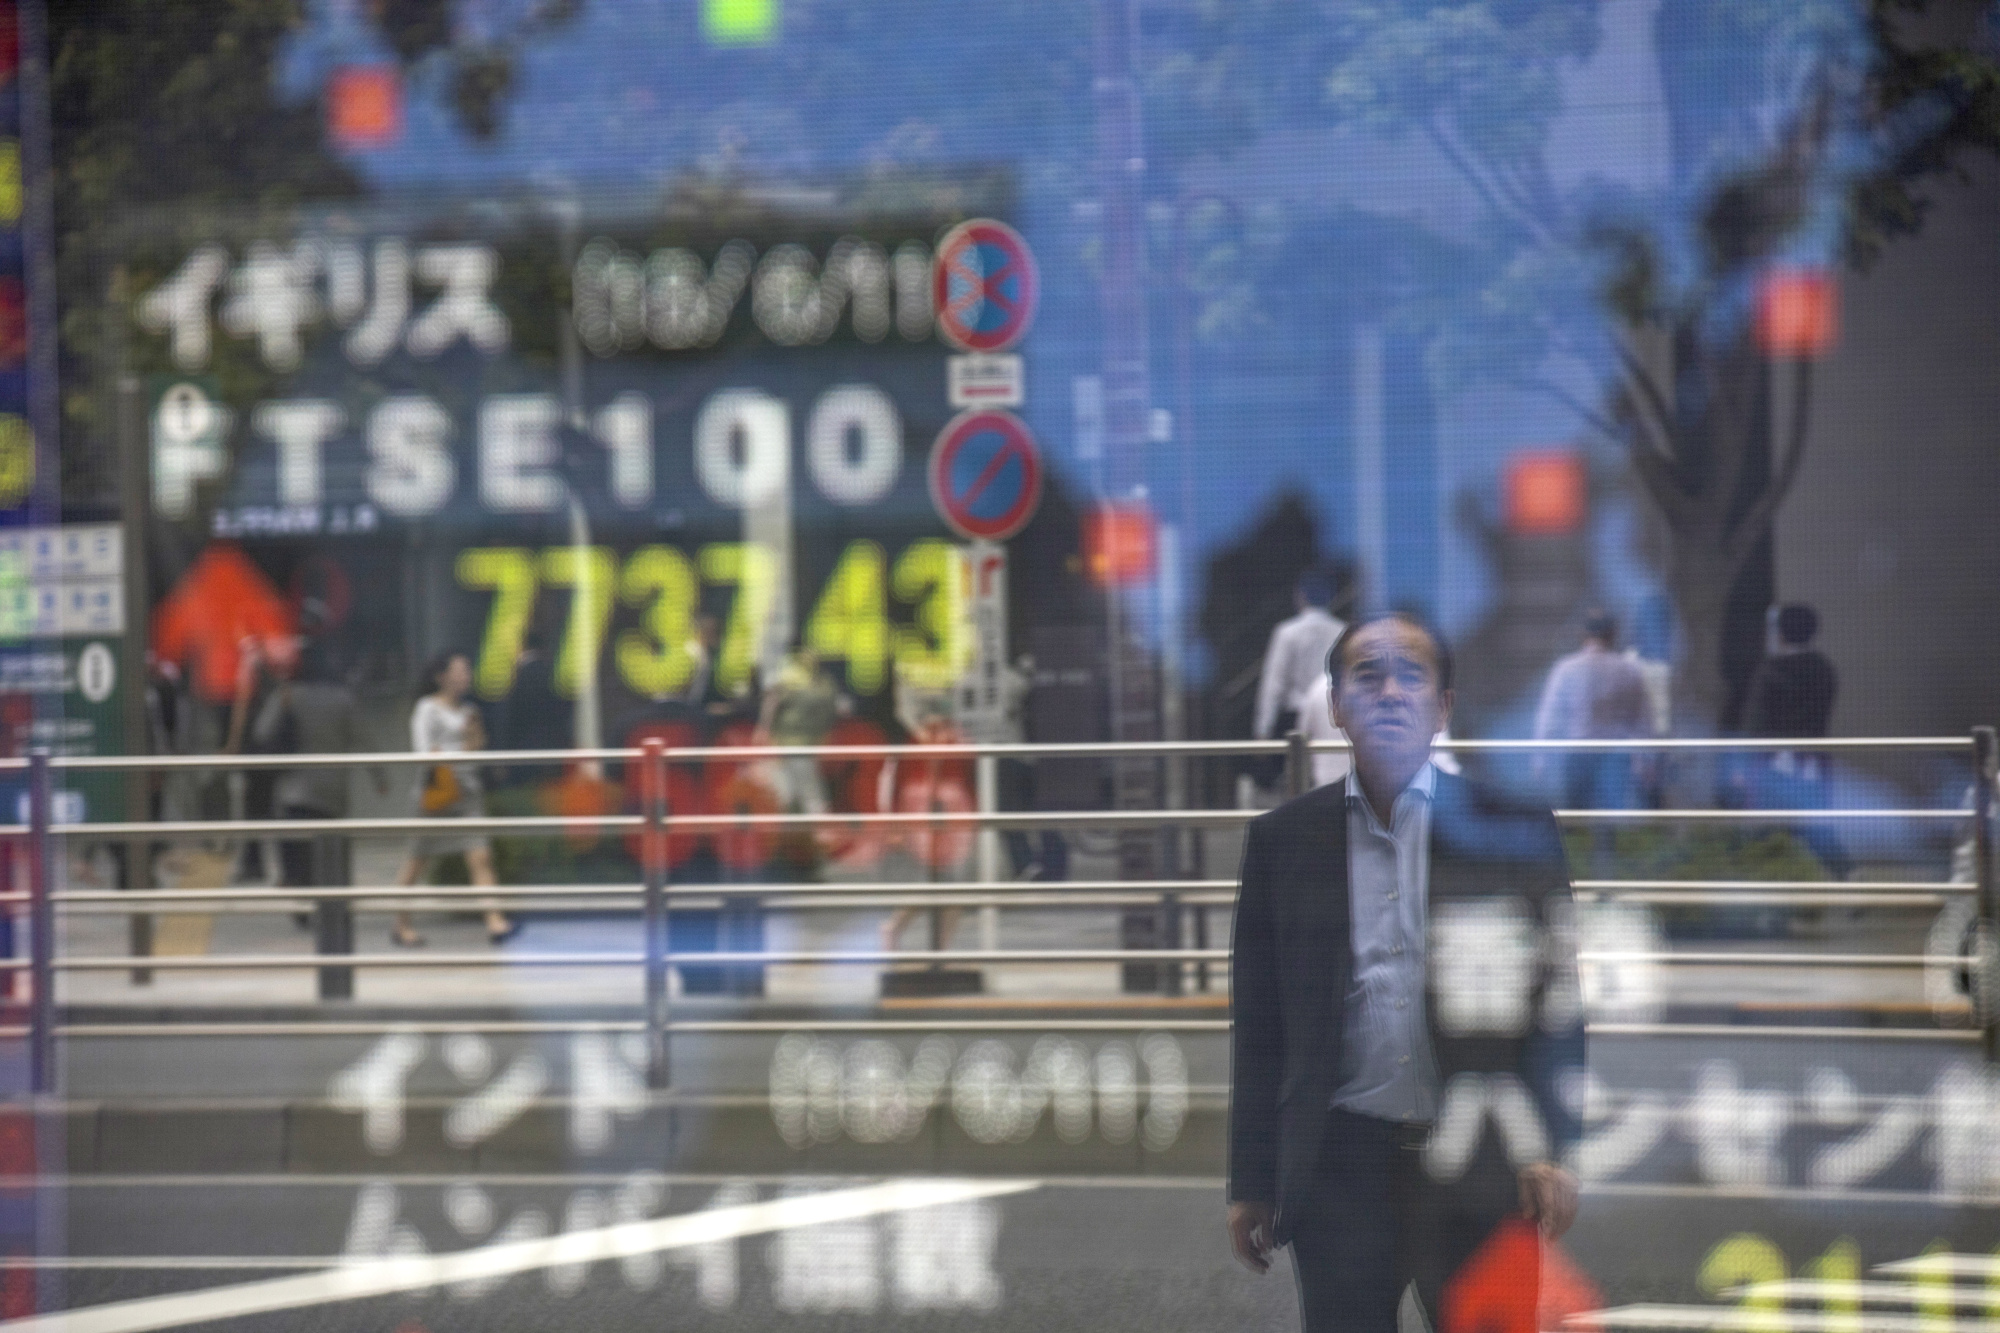 bloomberg.com - Adam Haigh - Asia Stocks Signal Mixed Start Ahead of China Data: Markets Wrap